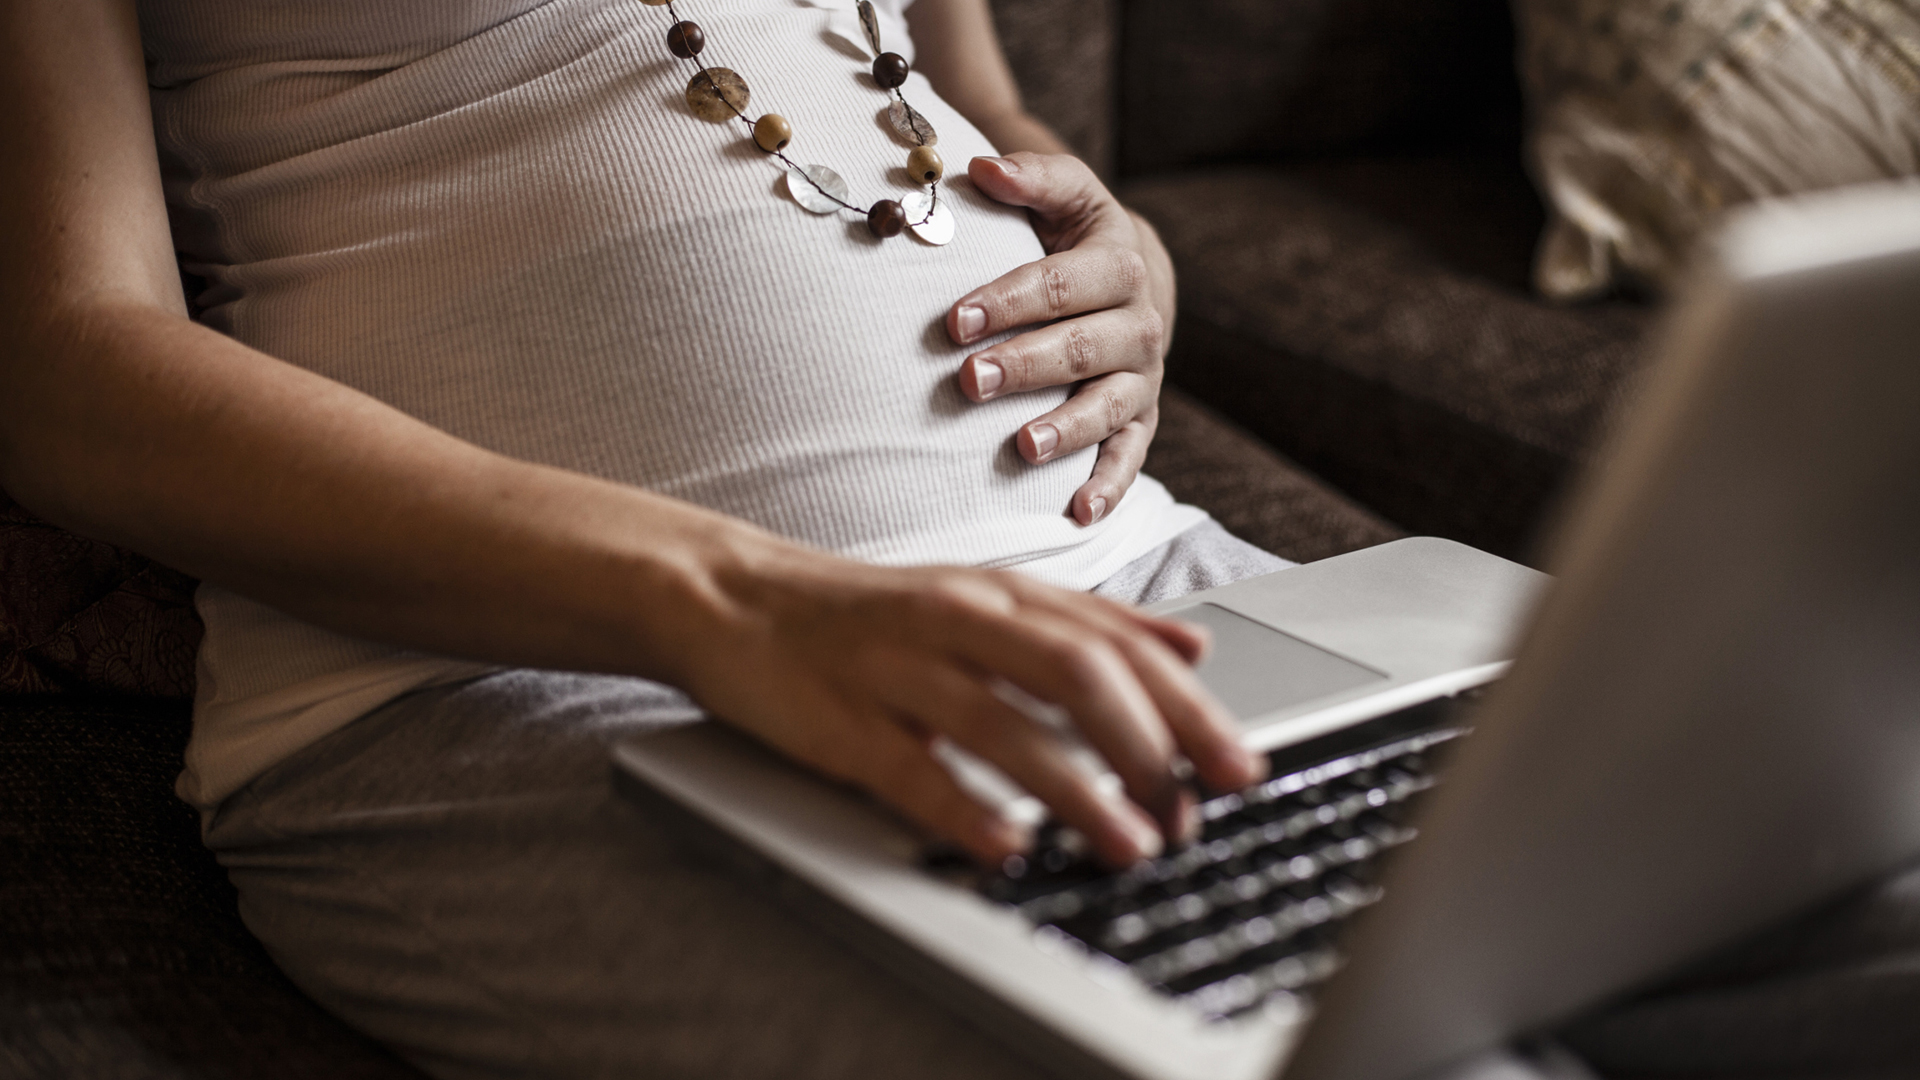 Pregnant woman using laptop | Sheknows.com